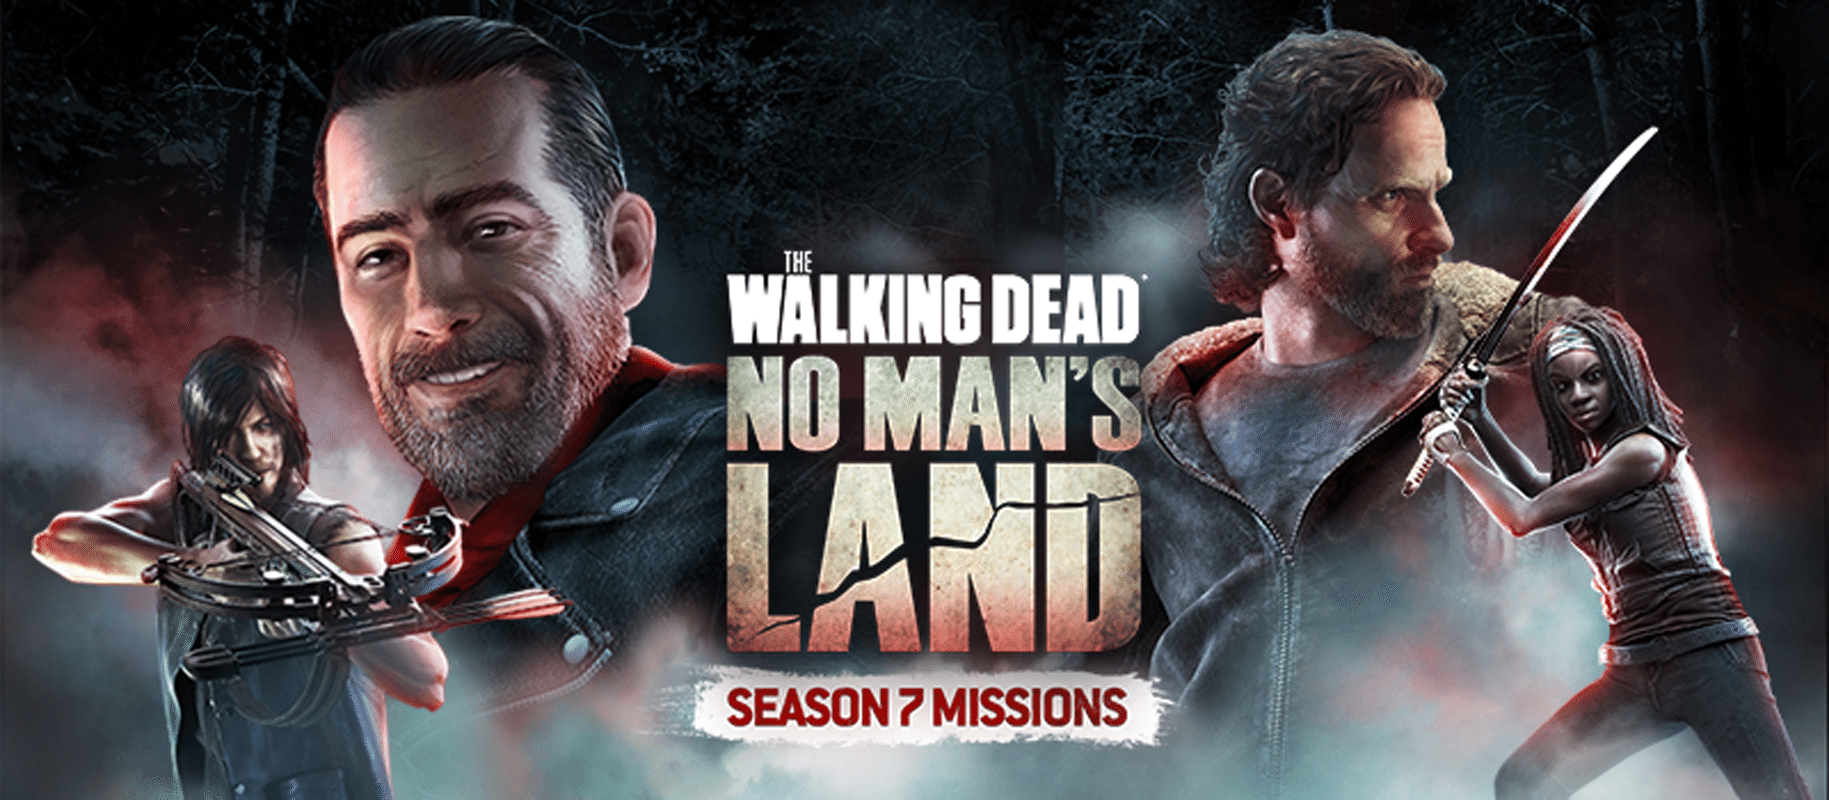 The Walking Dead: No Man's Land Season 7 Missions Now Available